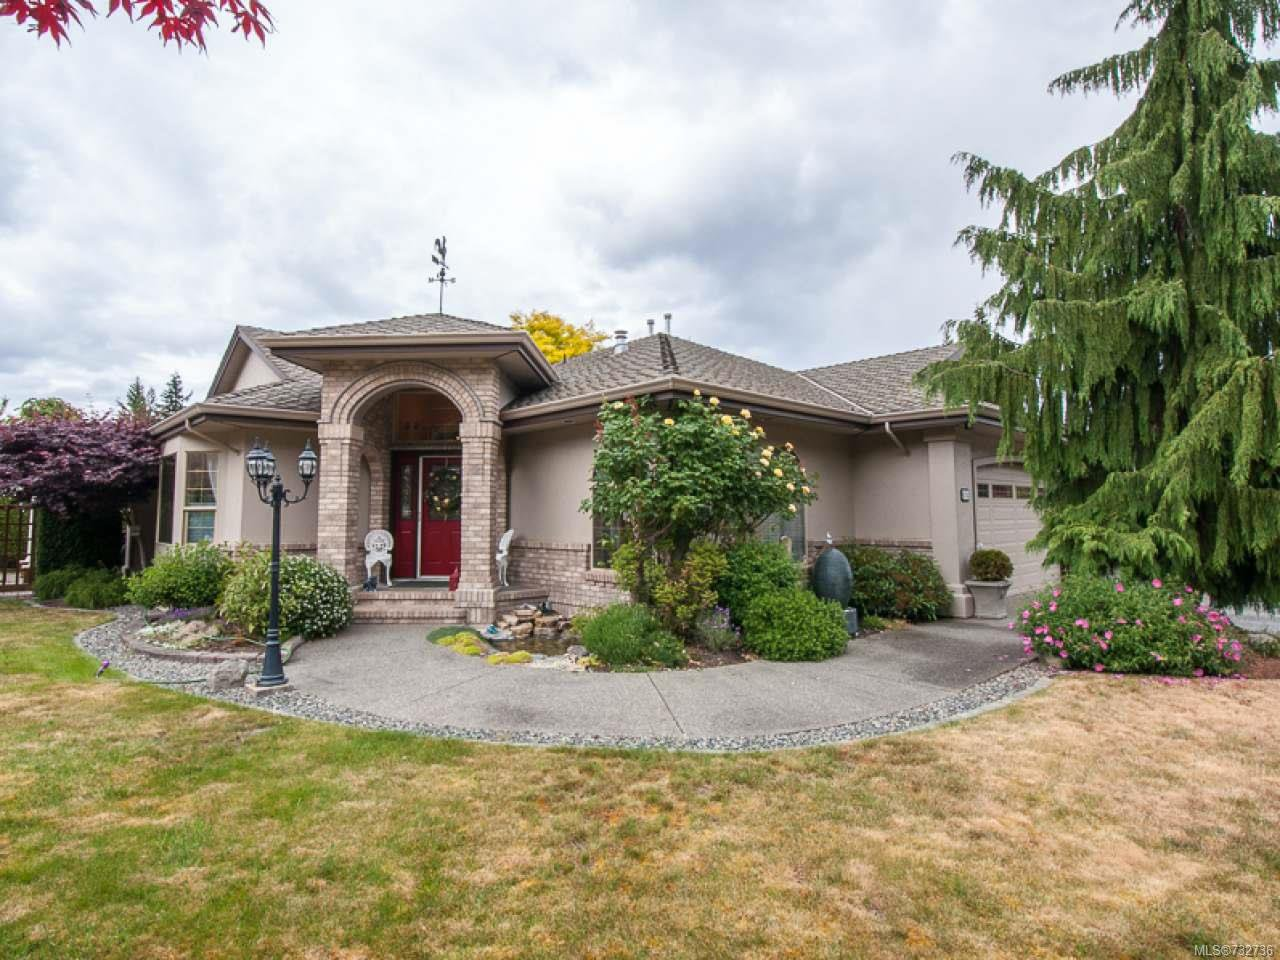 Main Photo: 574 JUNIPER DRIVE in QUALICUM BEACH: PQ Qualicum Beach House for sale (Parksville/Qualicum)  : MLS®# 732736